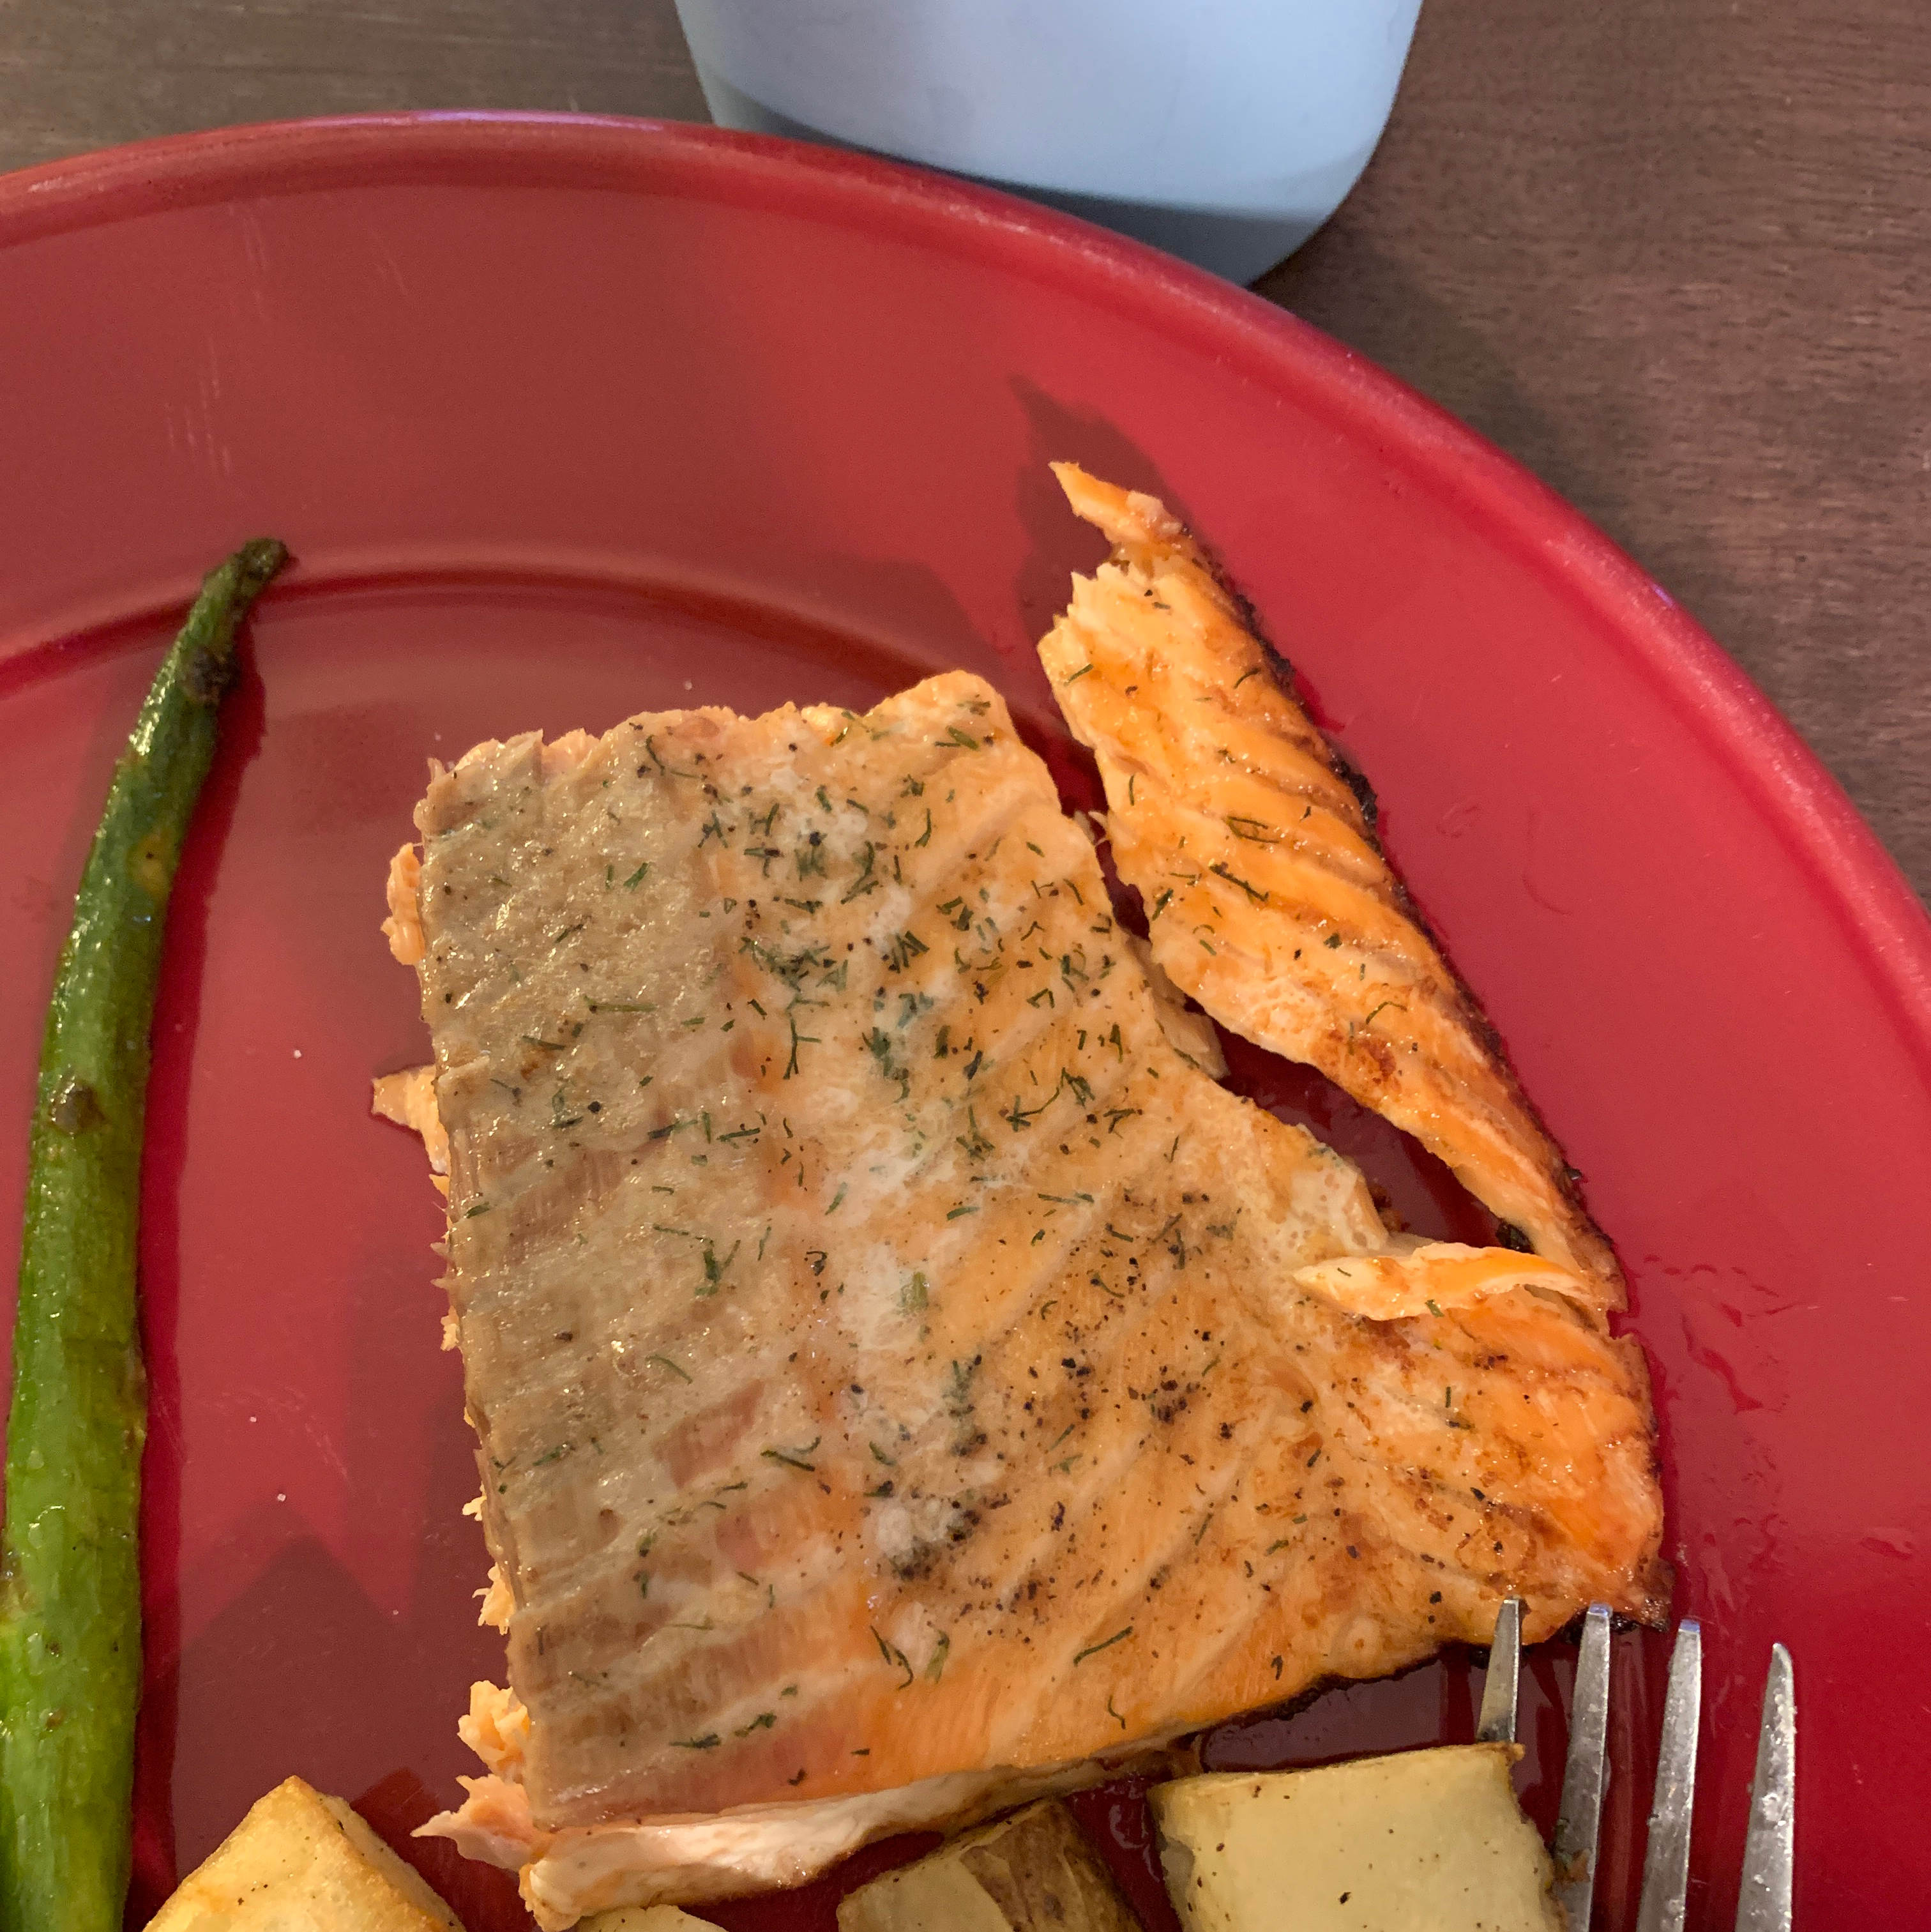 Salmon with Dill Emily MacMurray